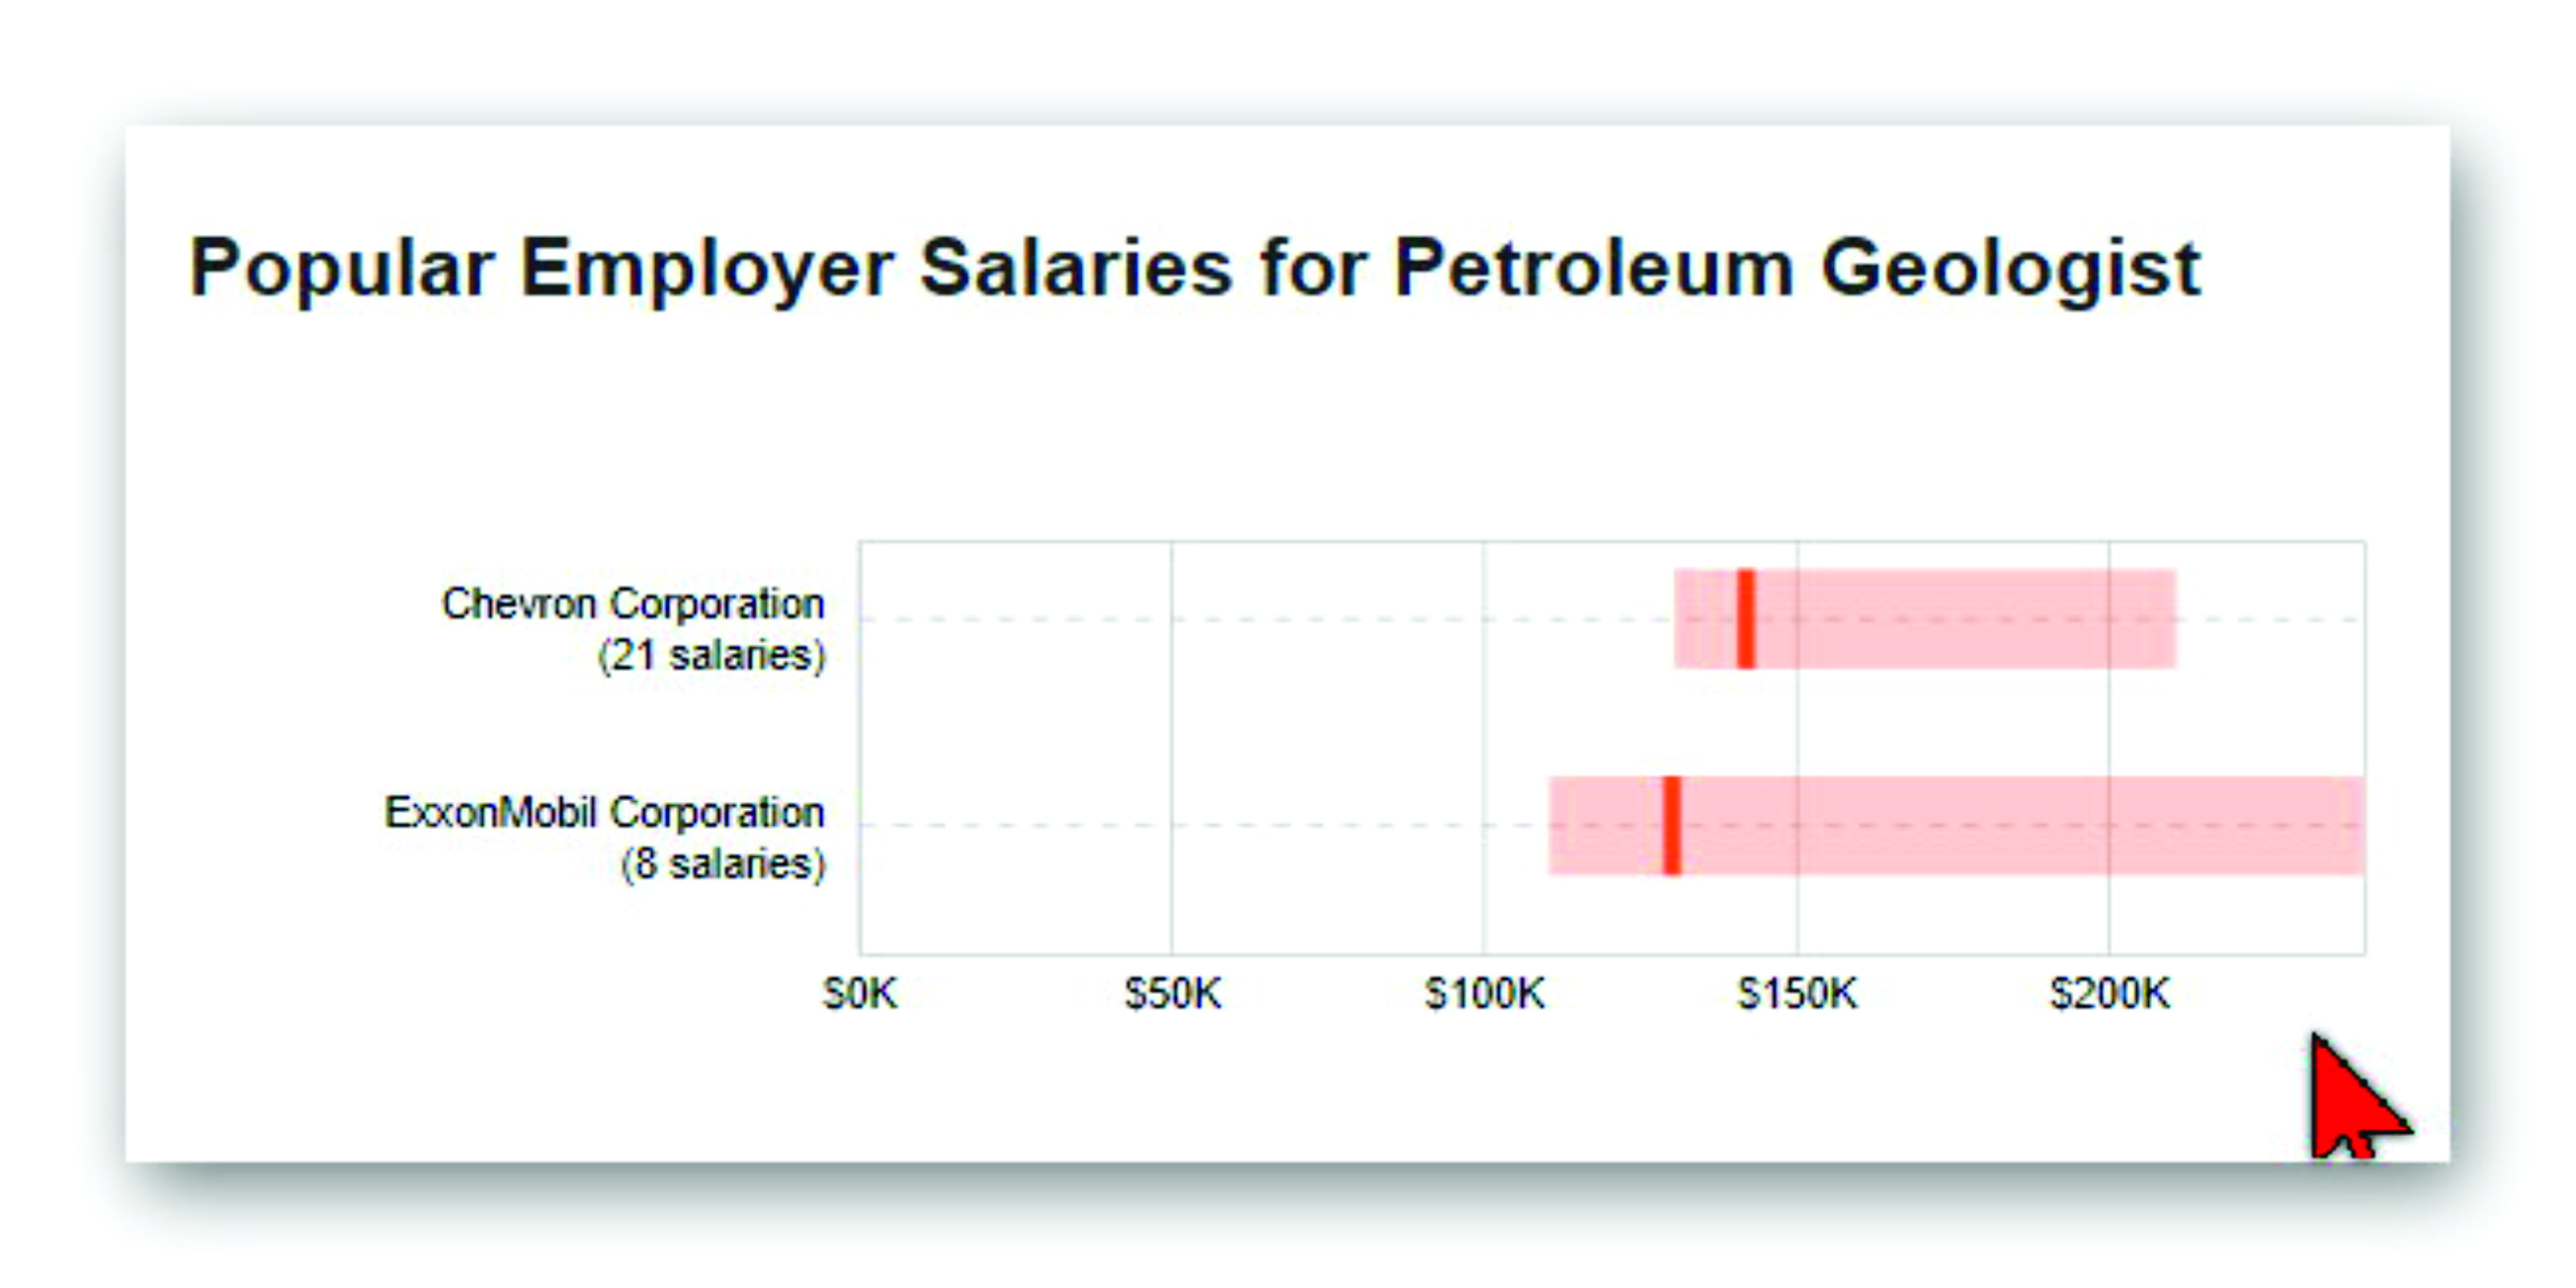 Who makes more money, petroleum engineer or petroleum geologist? - Quora